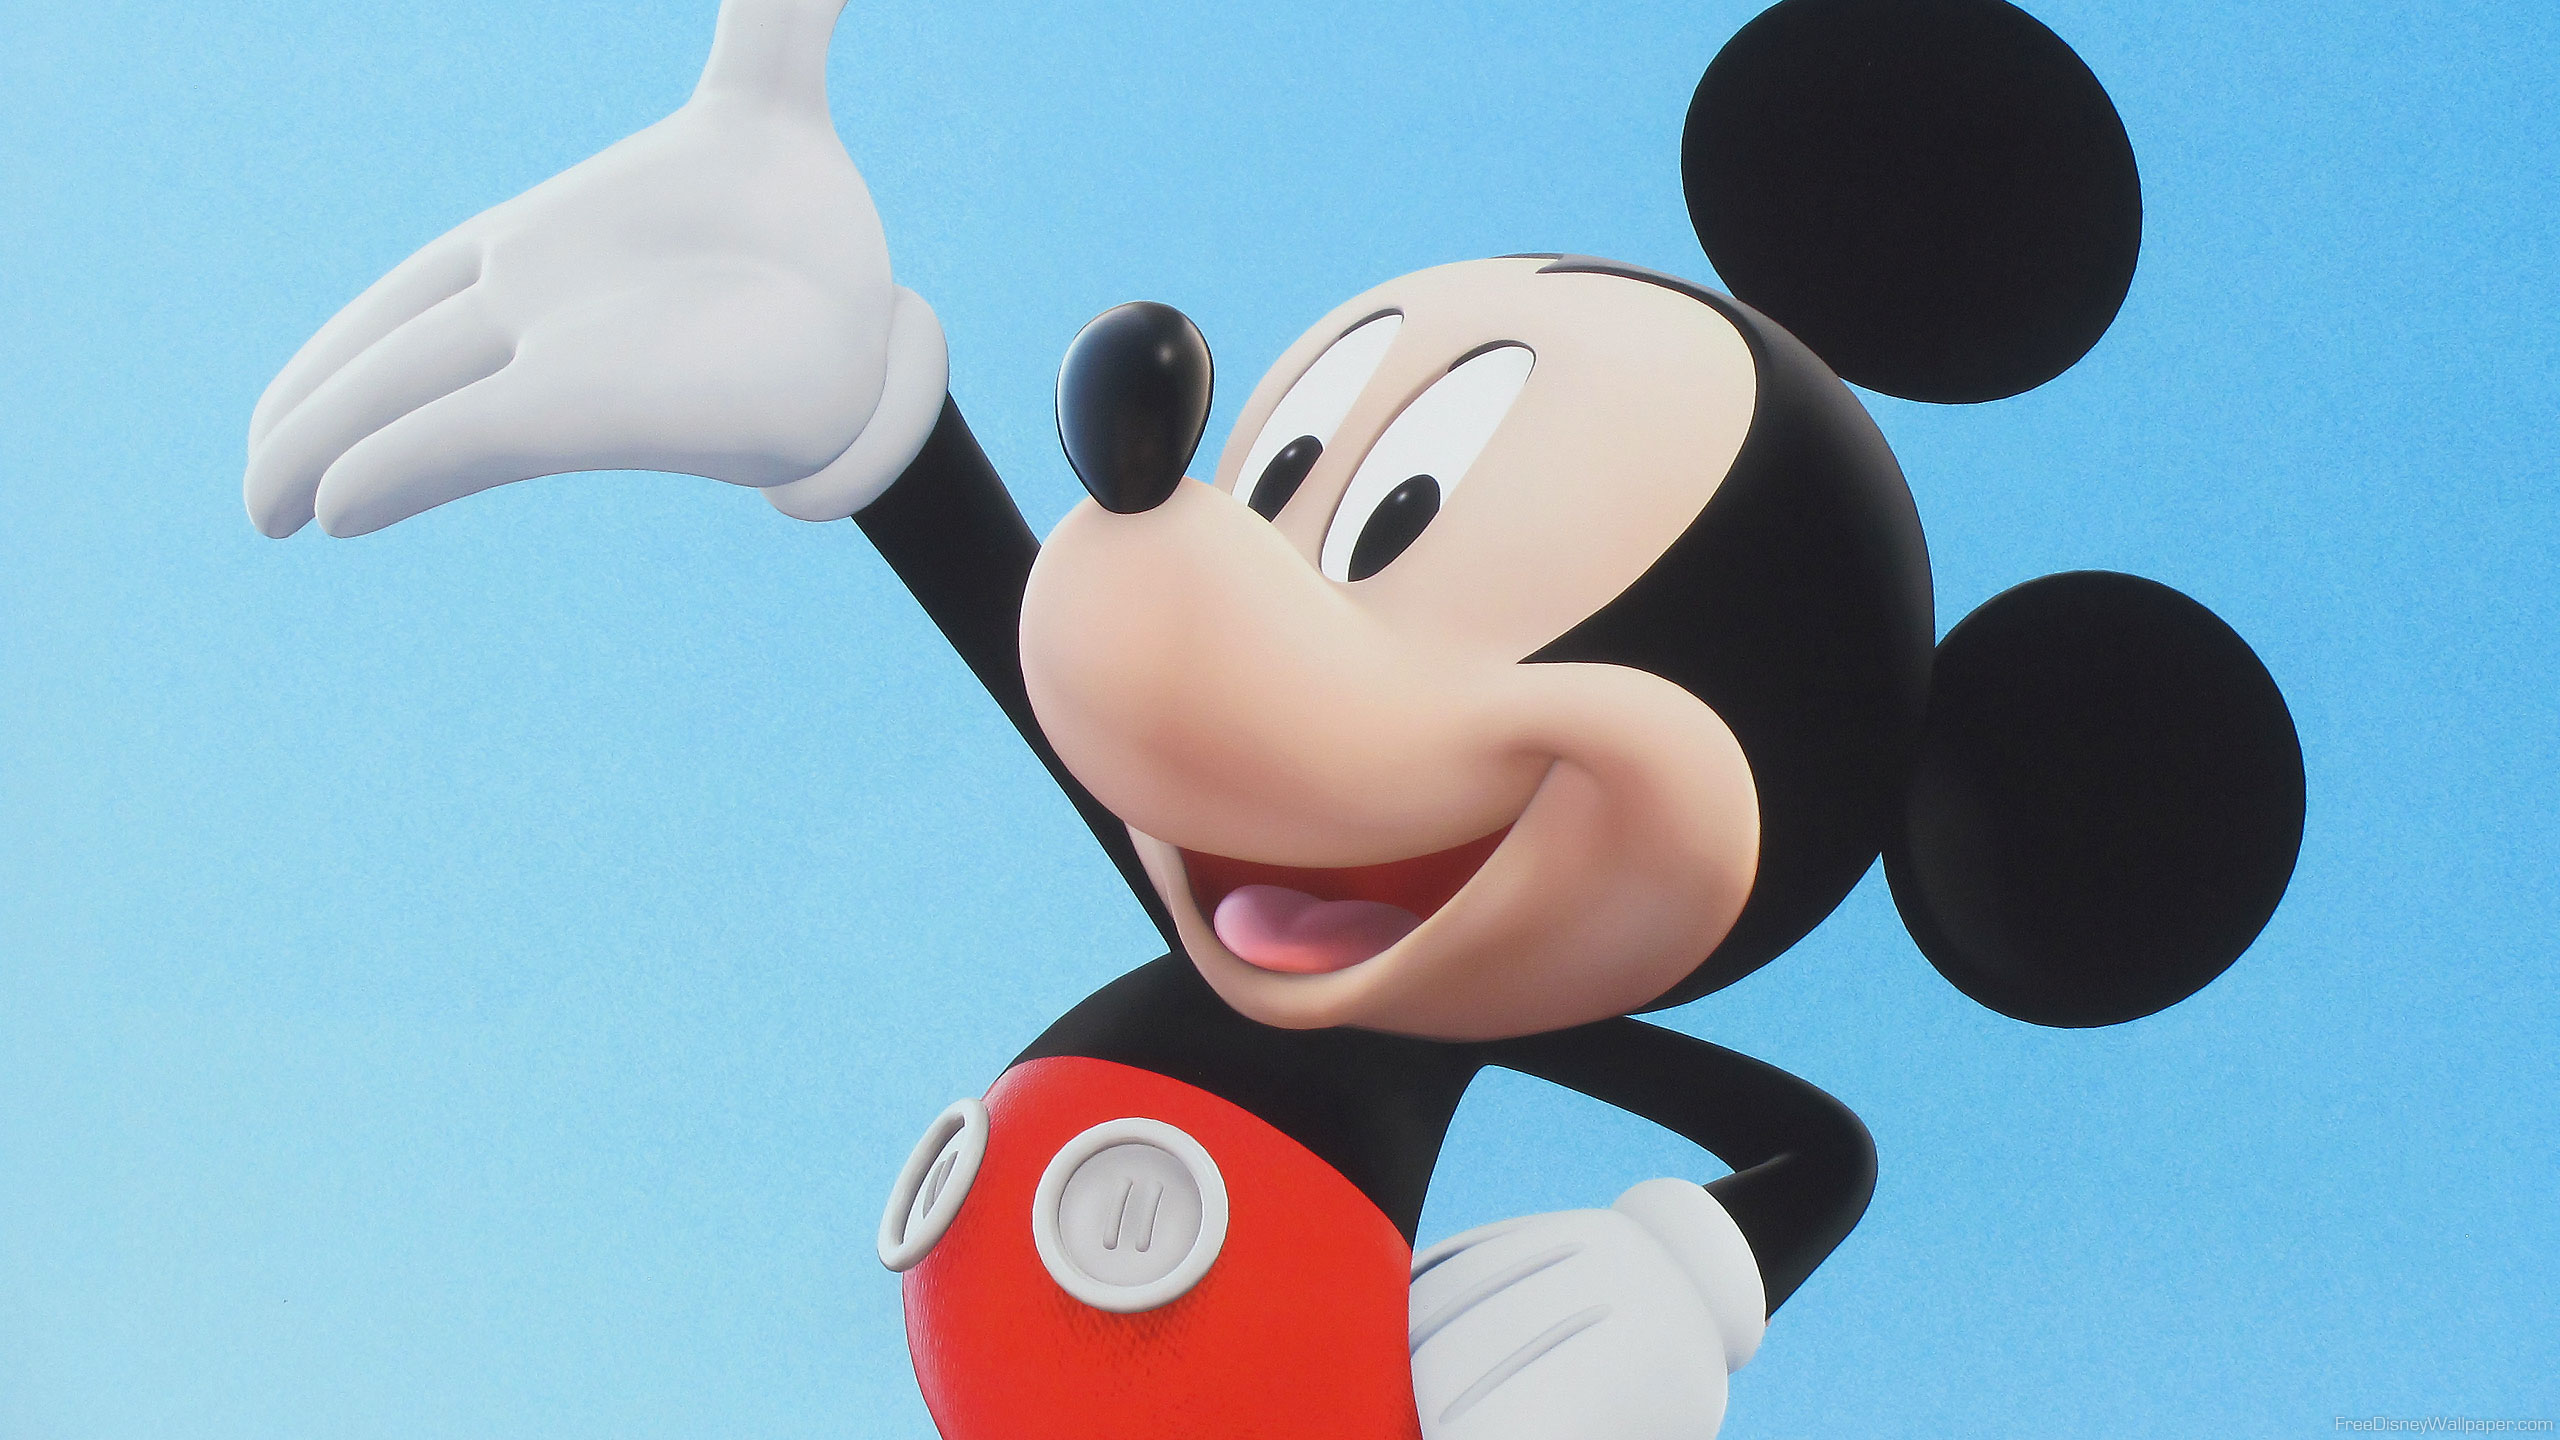 Ultra HD K Mickey mouse Wallpapers HD, Desktop Backgrounds 2560x1440